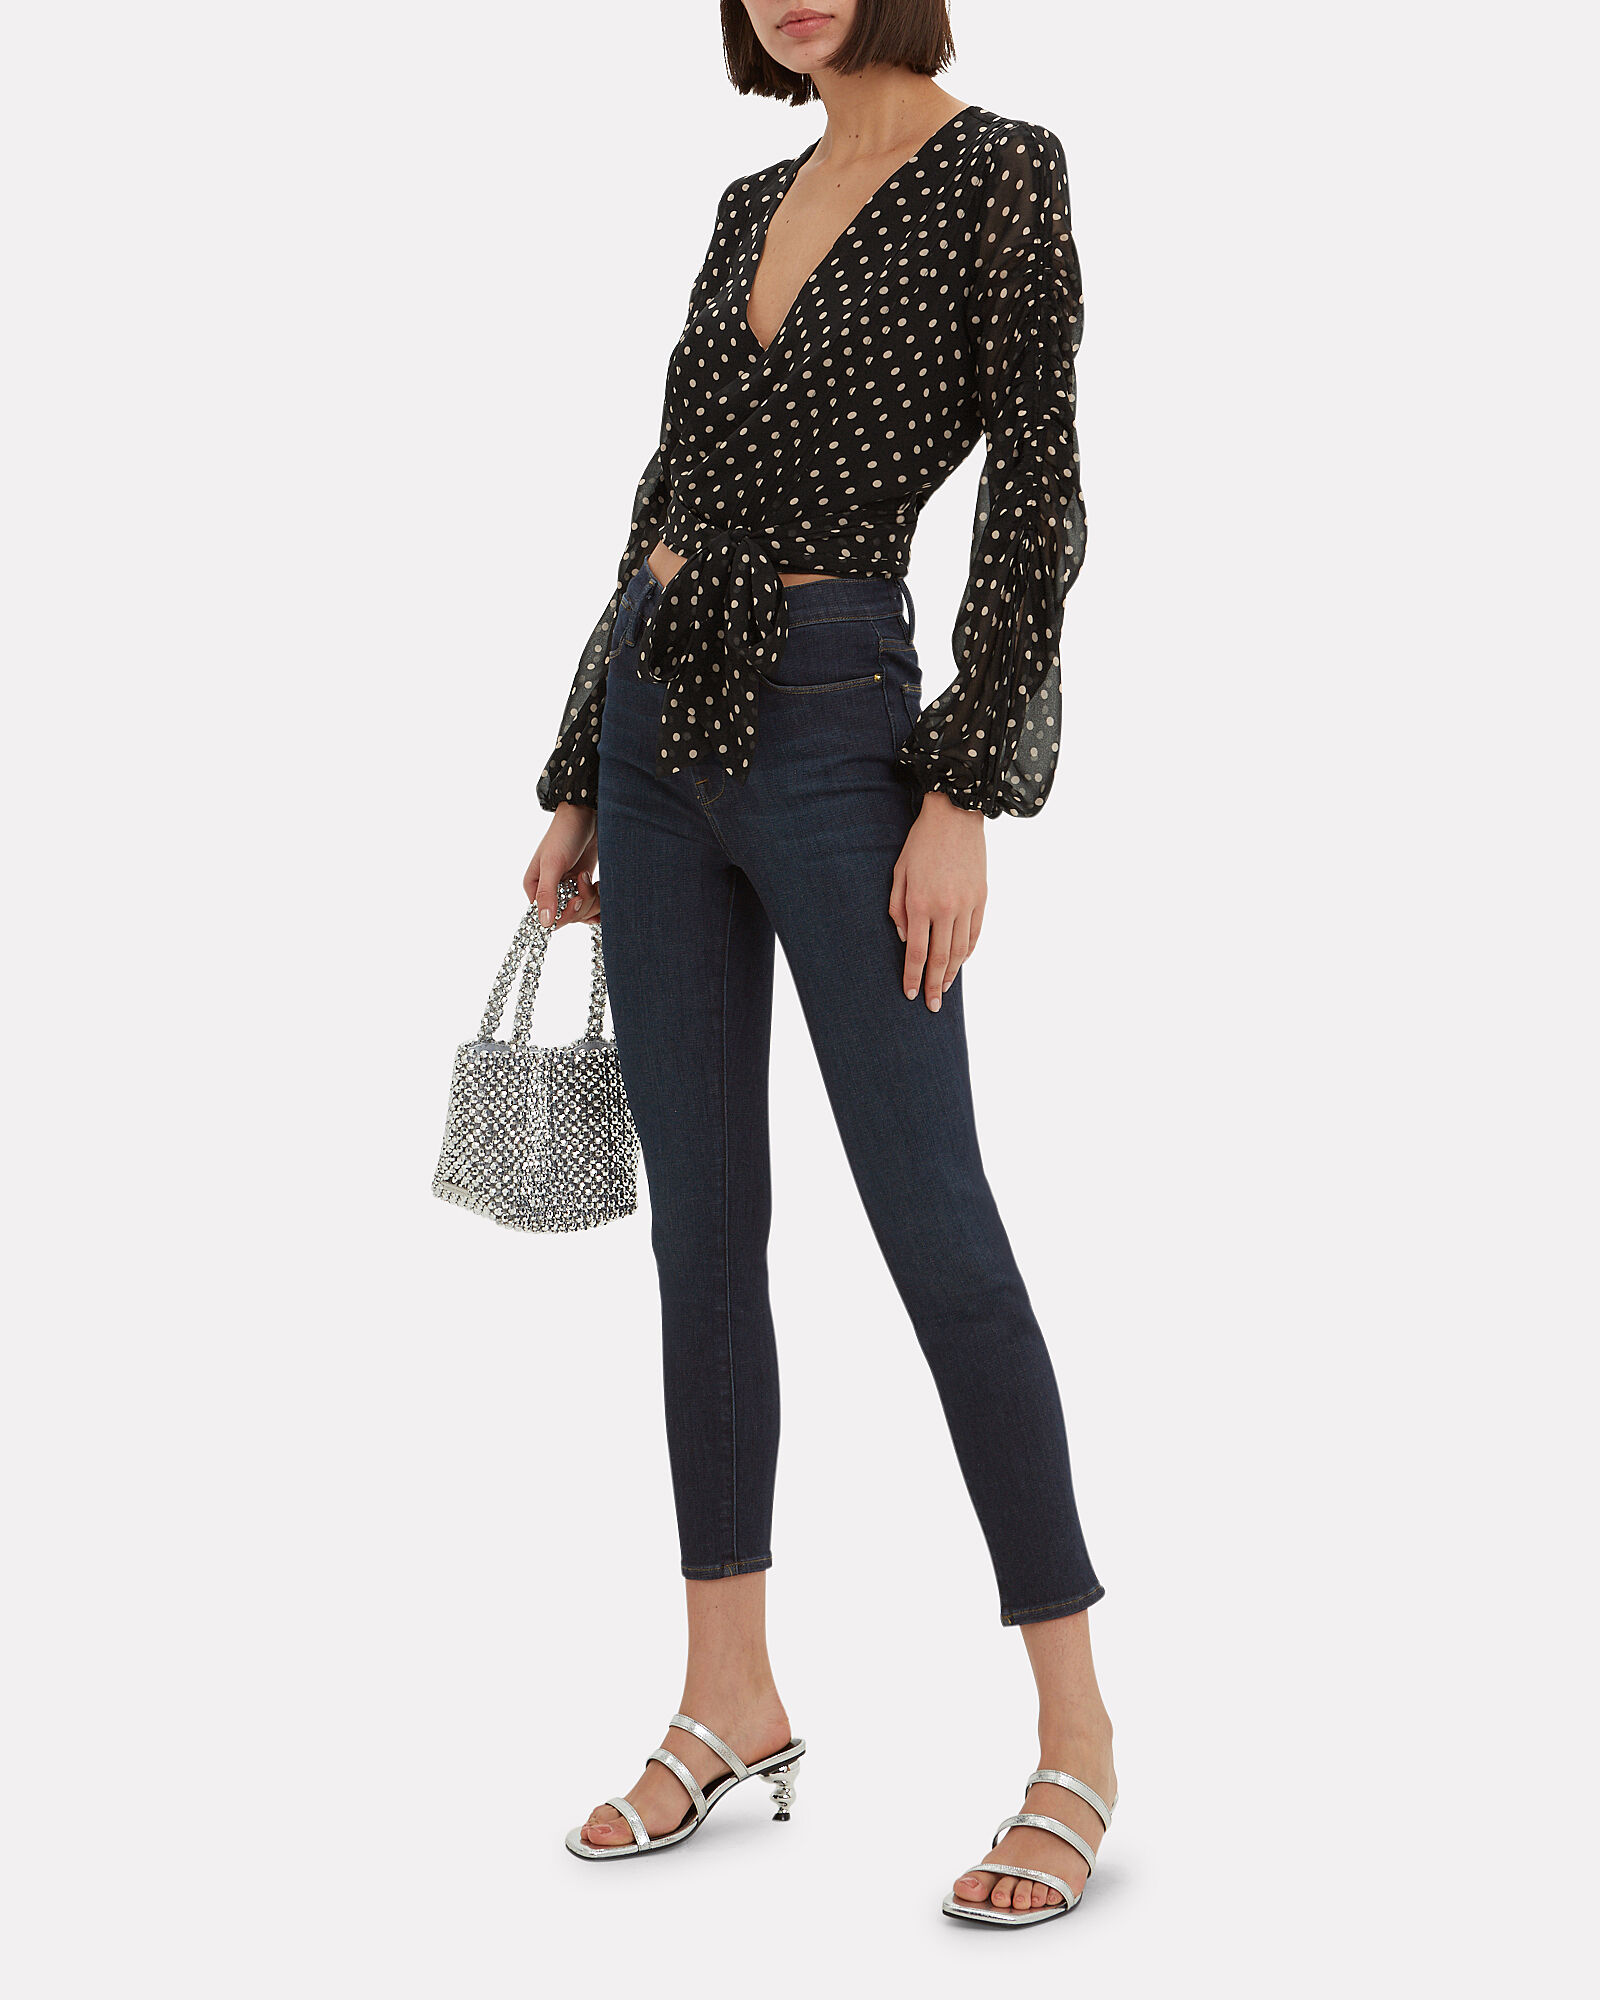 Le High Skinny Cropped Jeans, SAMIRA, hi-res